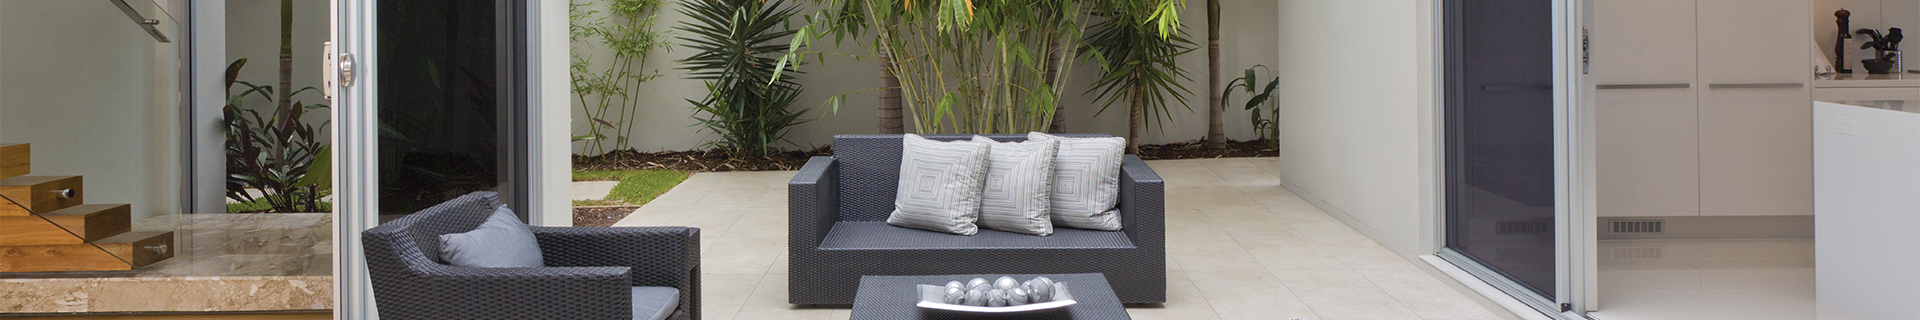 Outdoor area with couch, table and plants.